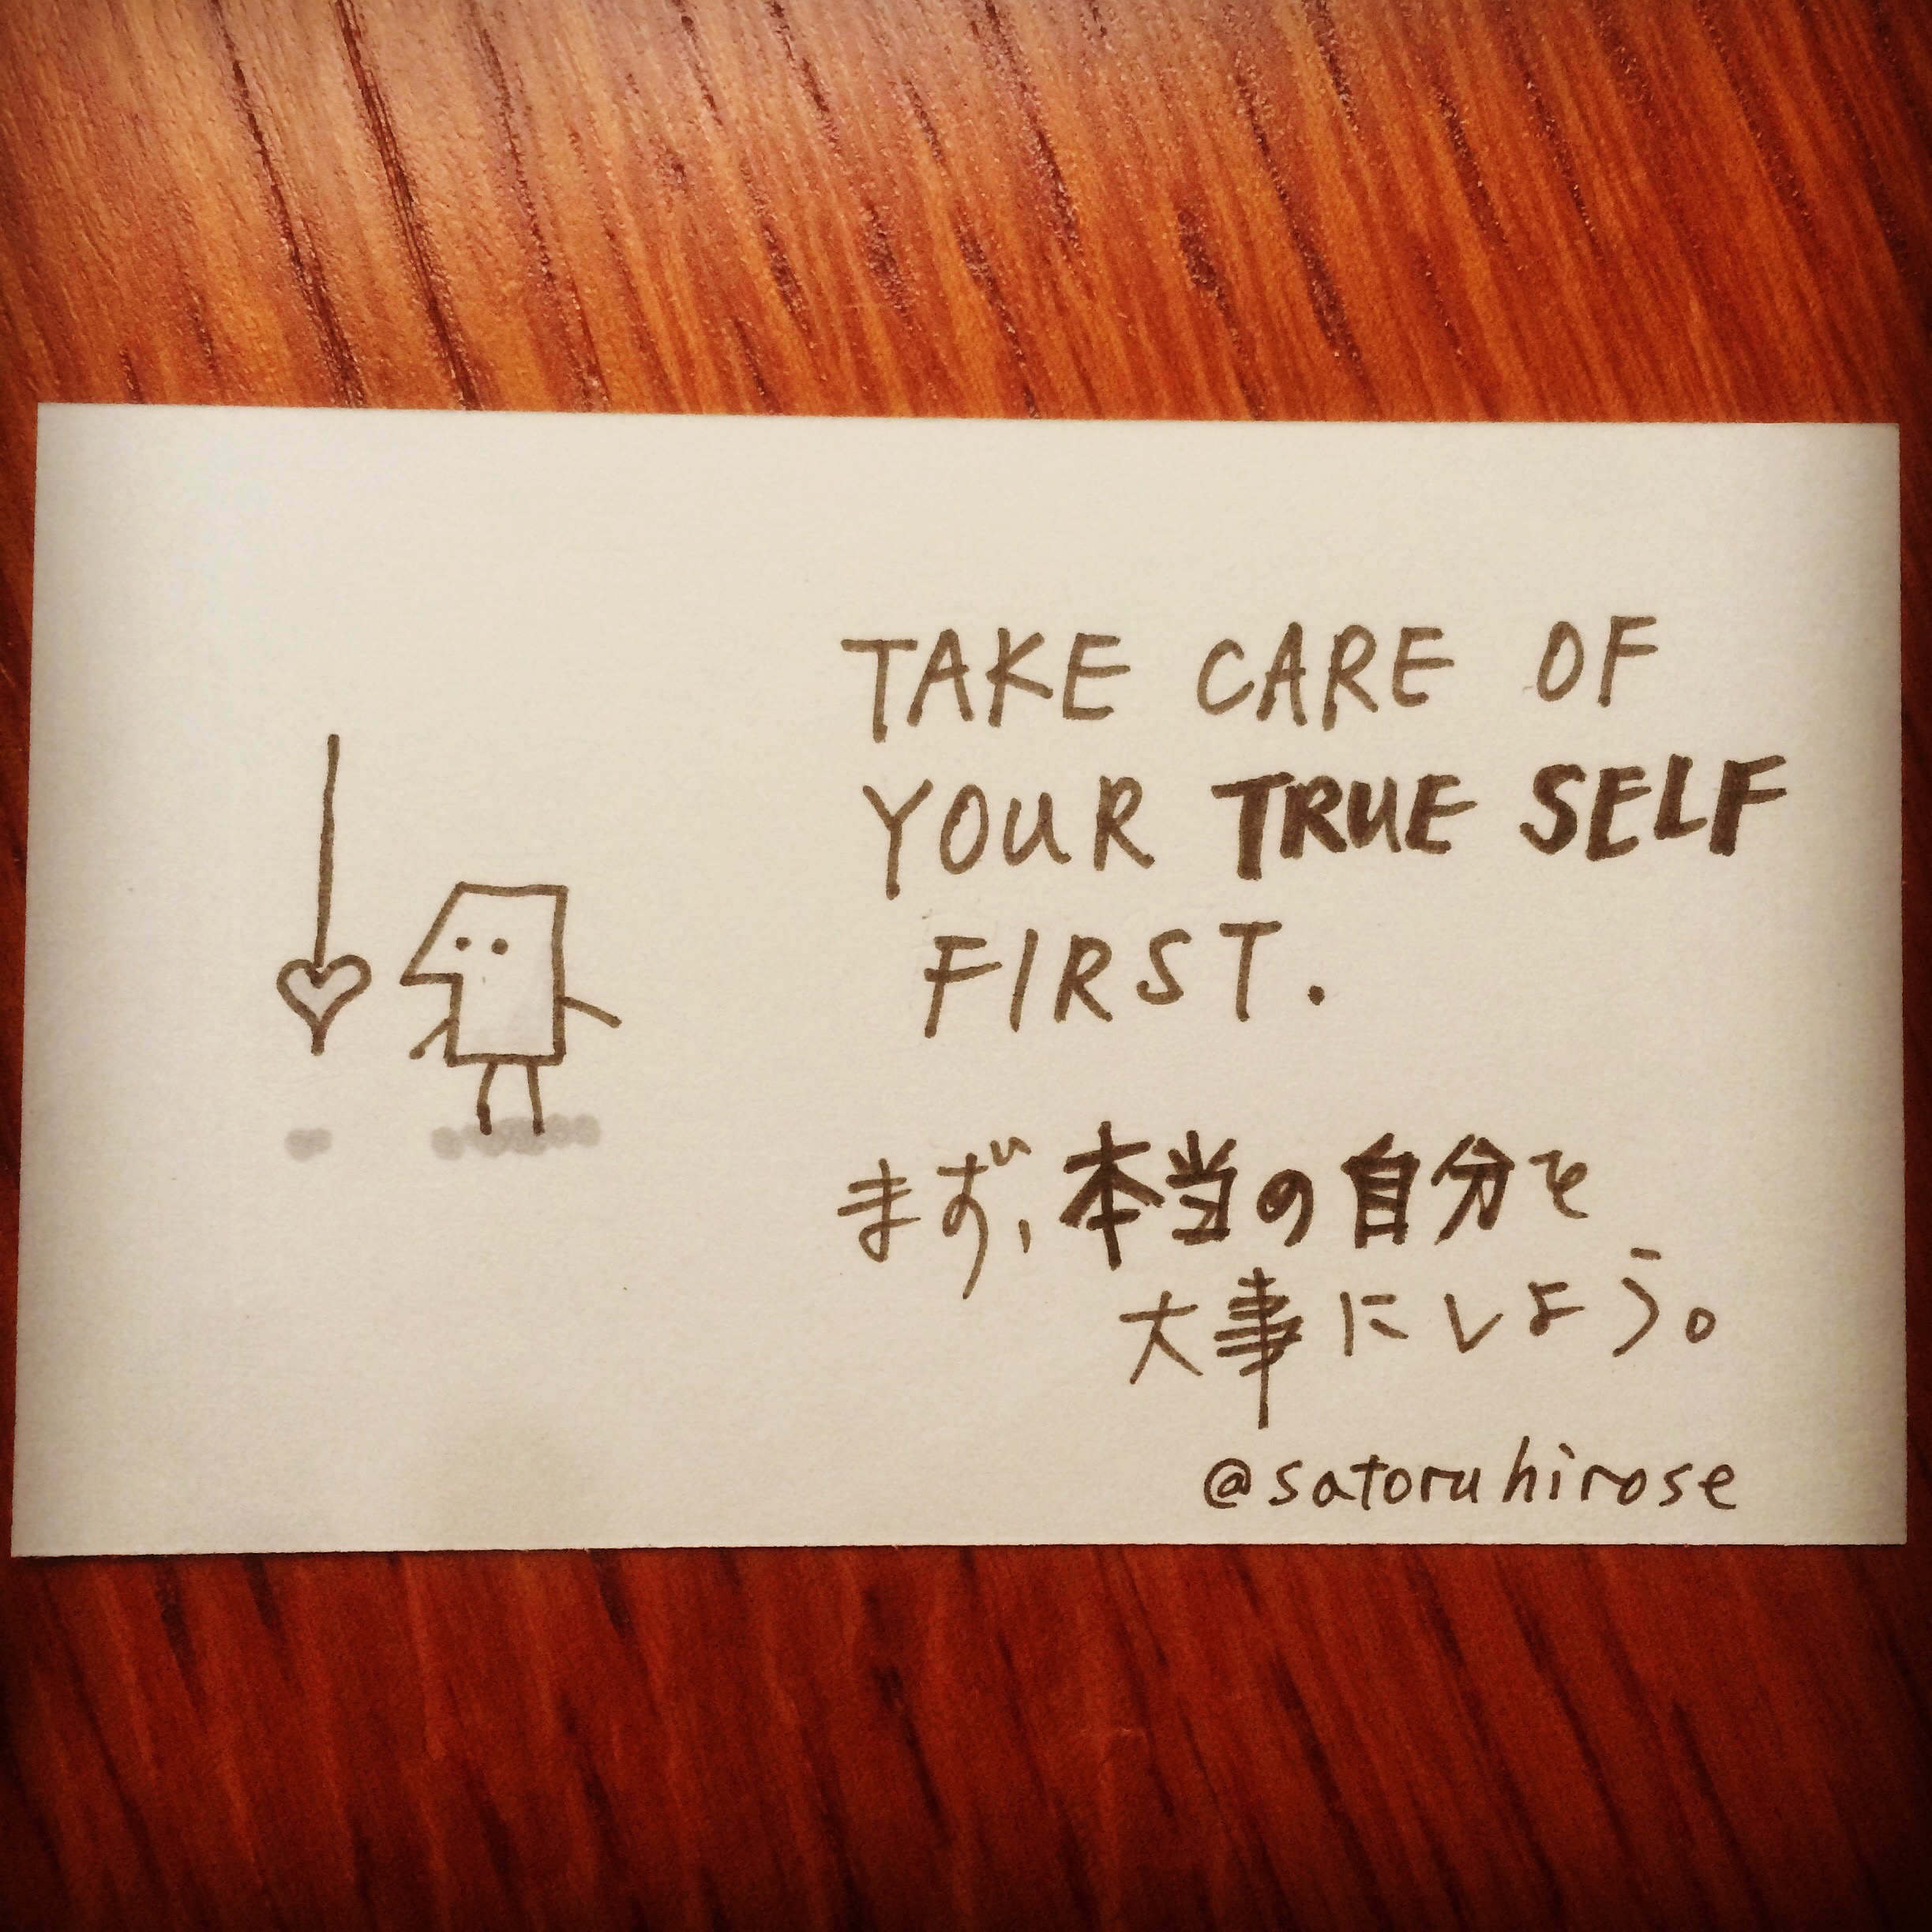 Take care of your true self first.